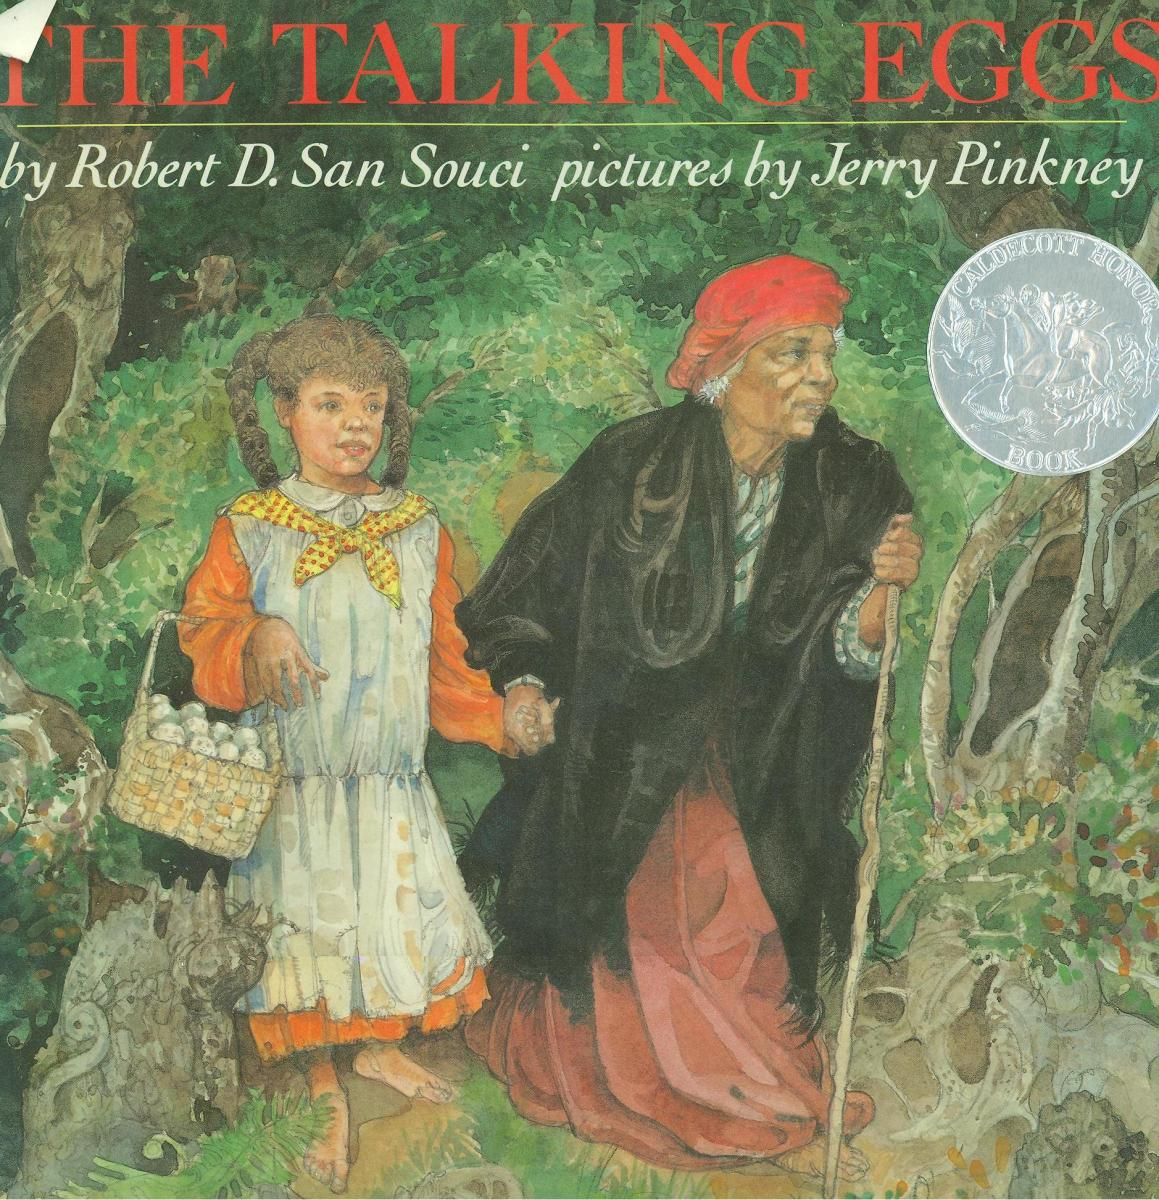 The Talking Eggs: A Folktale from the American South - book cover